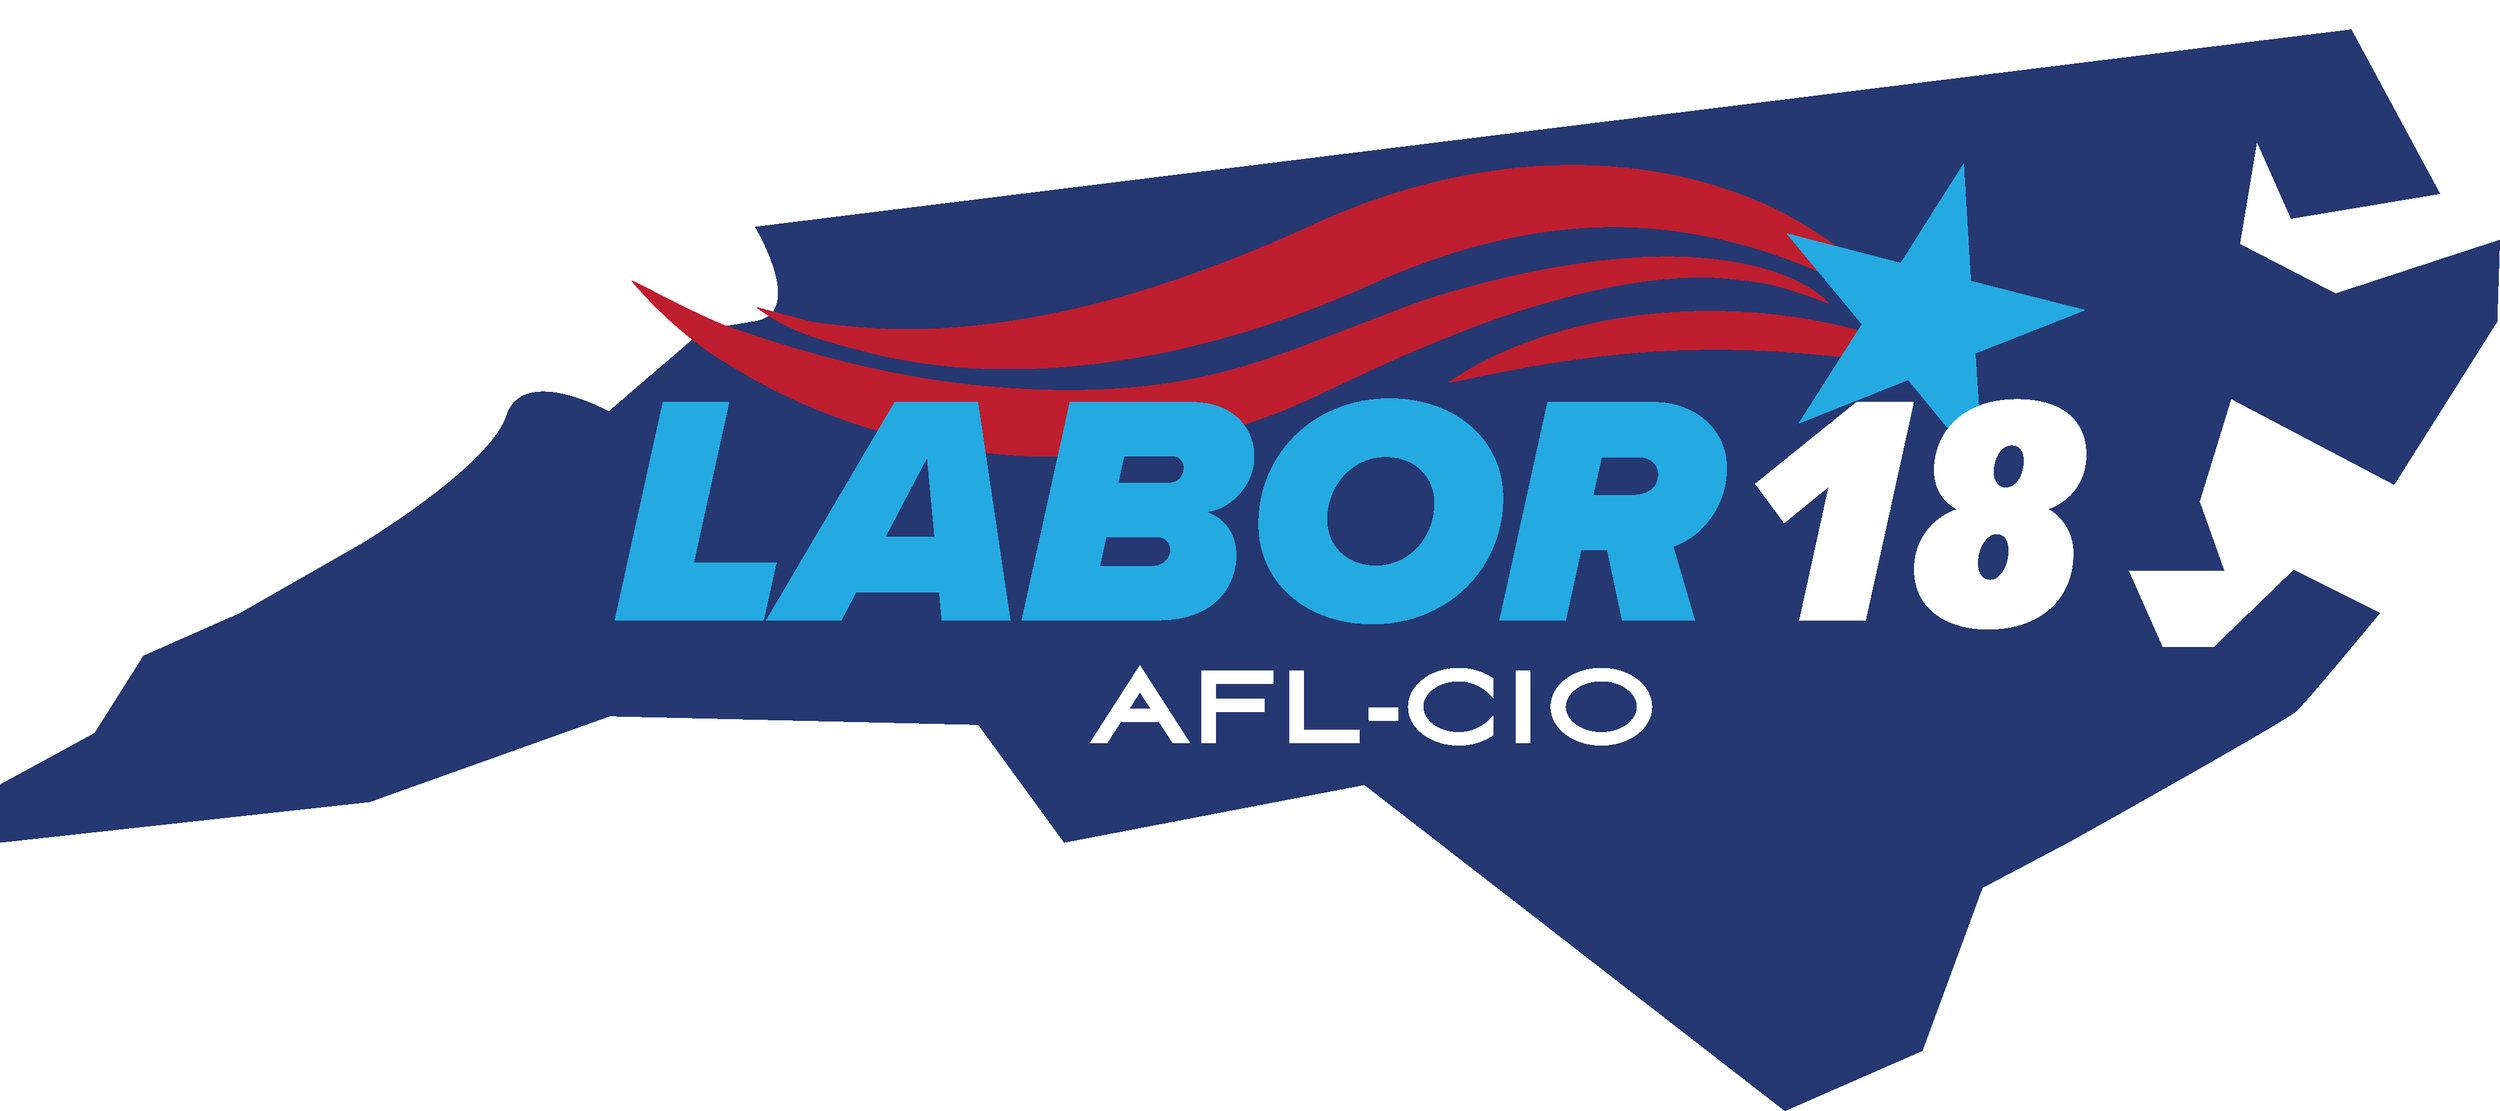 NC AFL-CIO - As a union member under the AFL-CIO umbrella I am proud to work to provide living wages, accessible healthcare and affordable quality education to all within the state.Learn More: http://aflcionc.org/